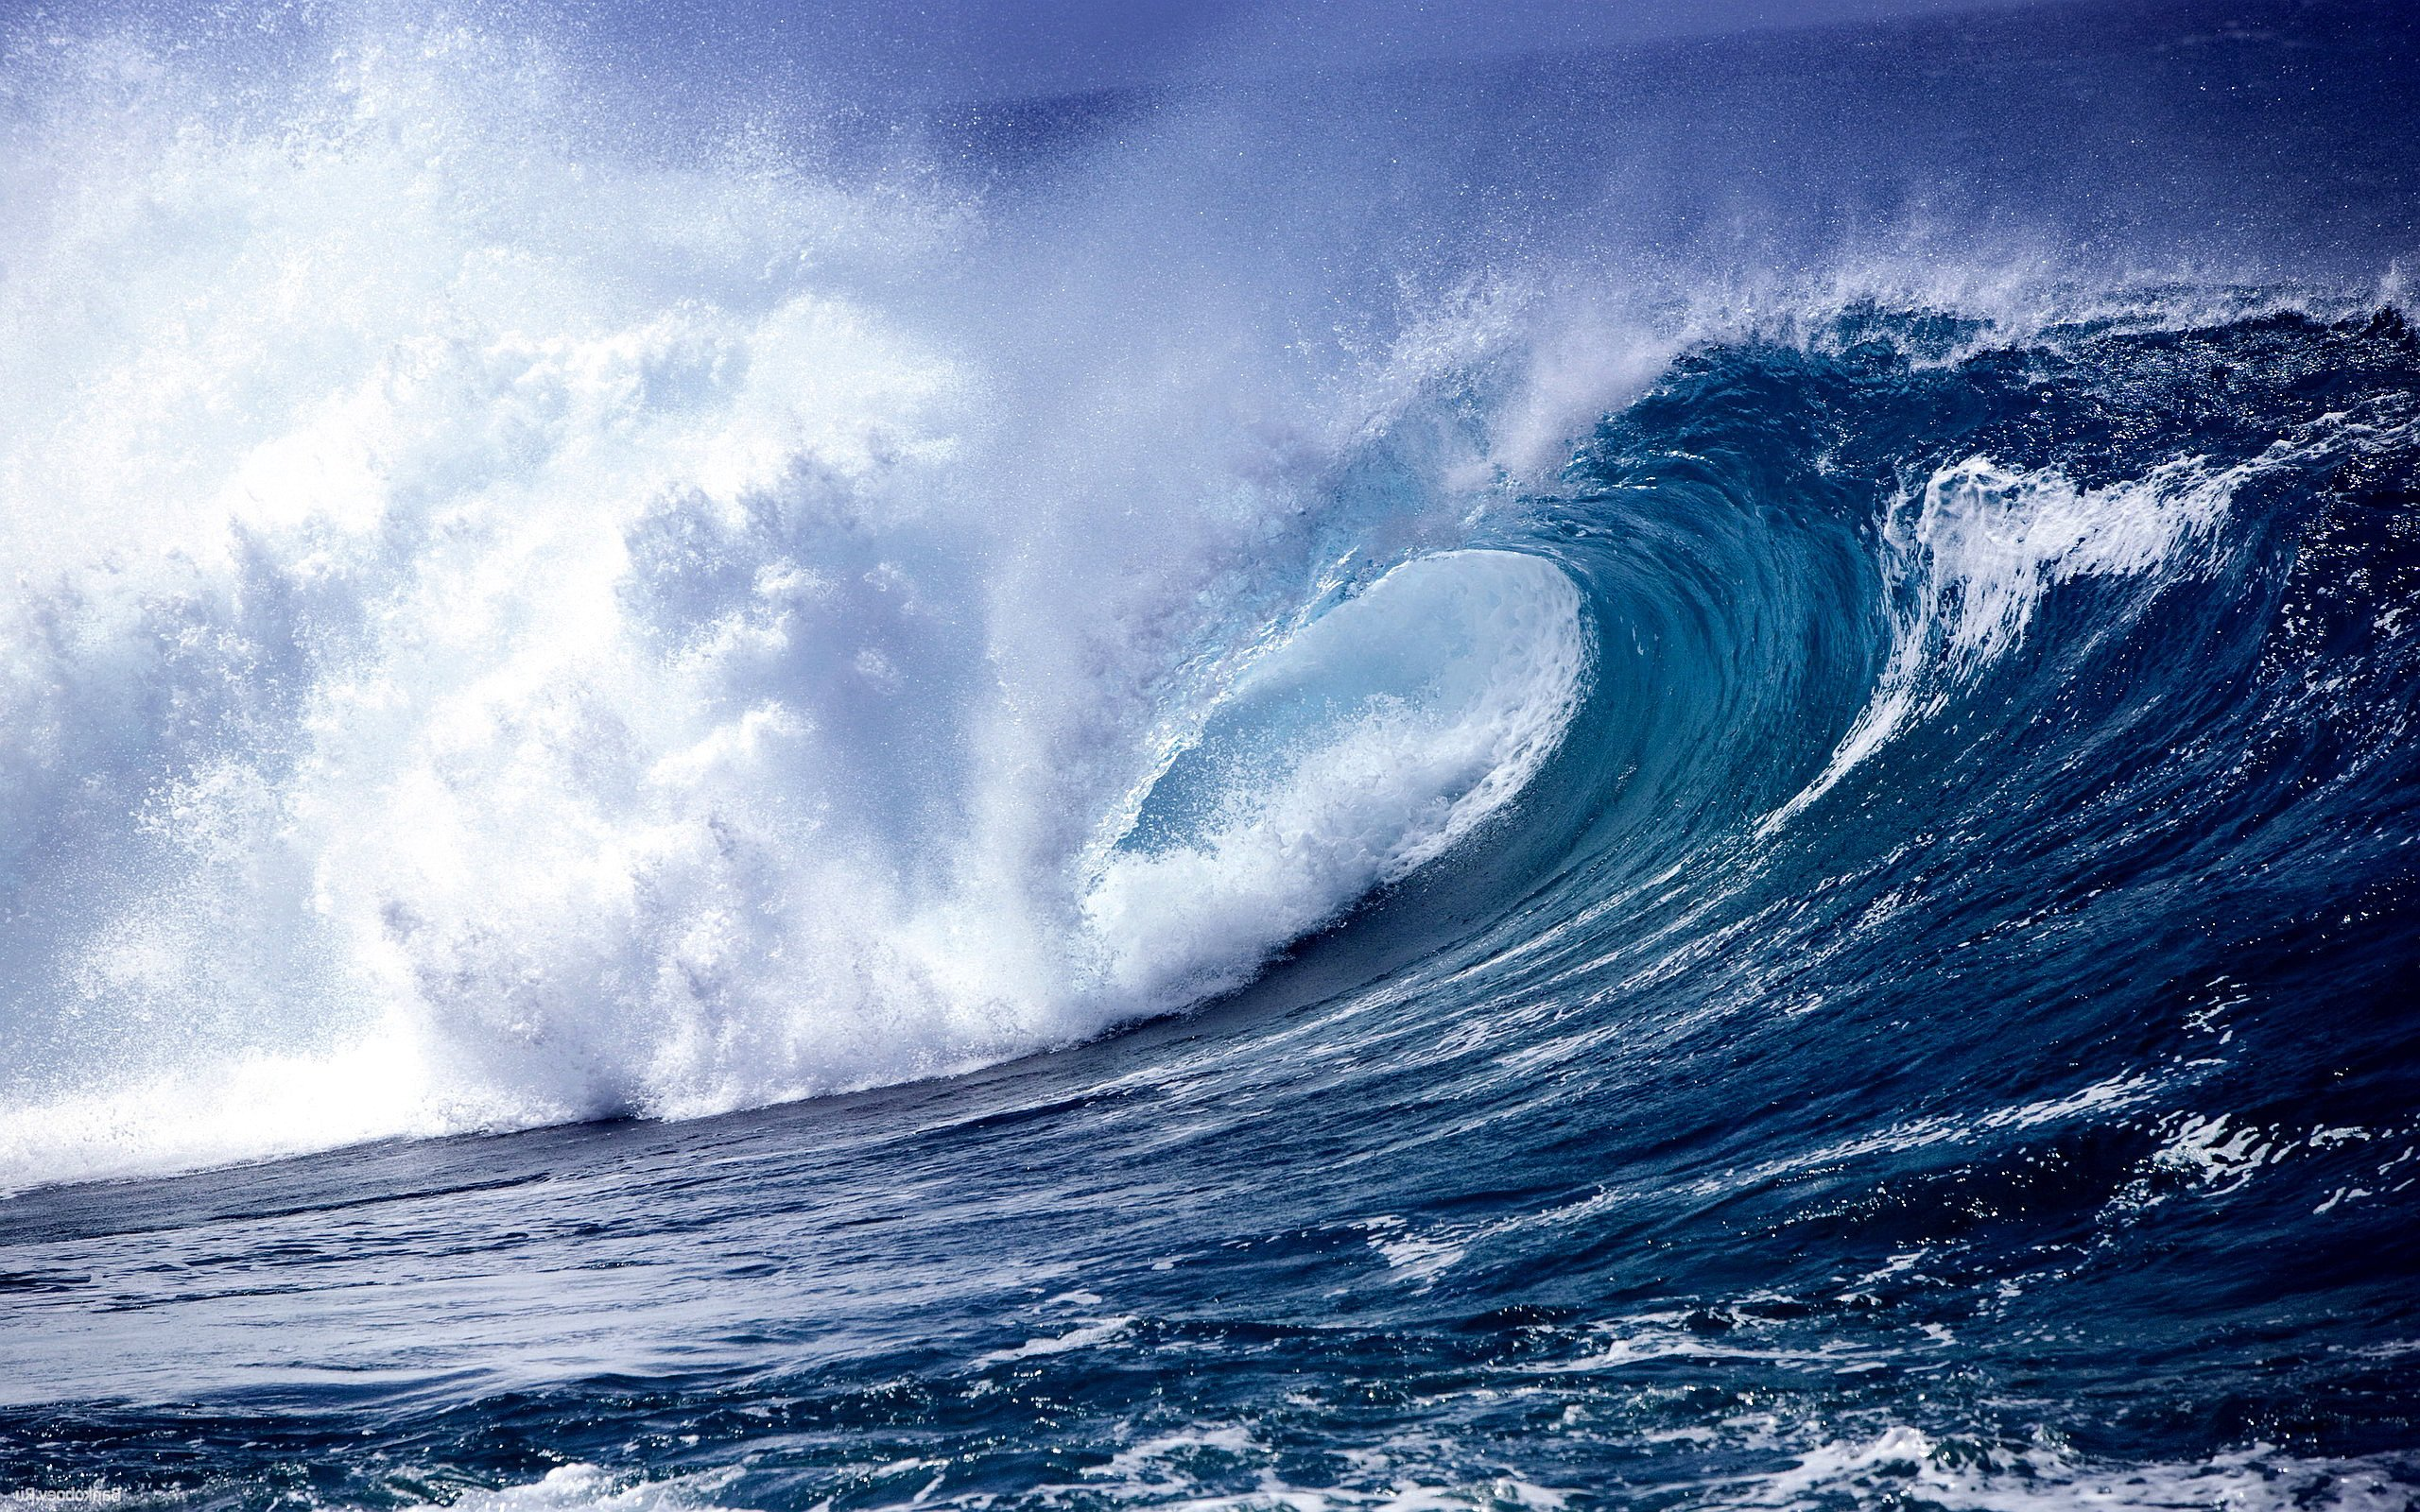 ocean waves live wallpaper which is under the ocean wallpapers 2560x1600